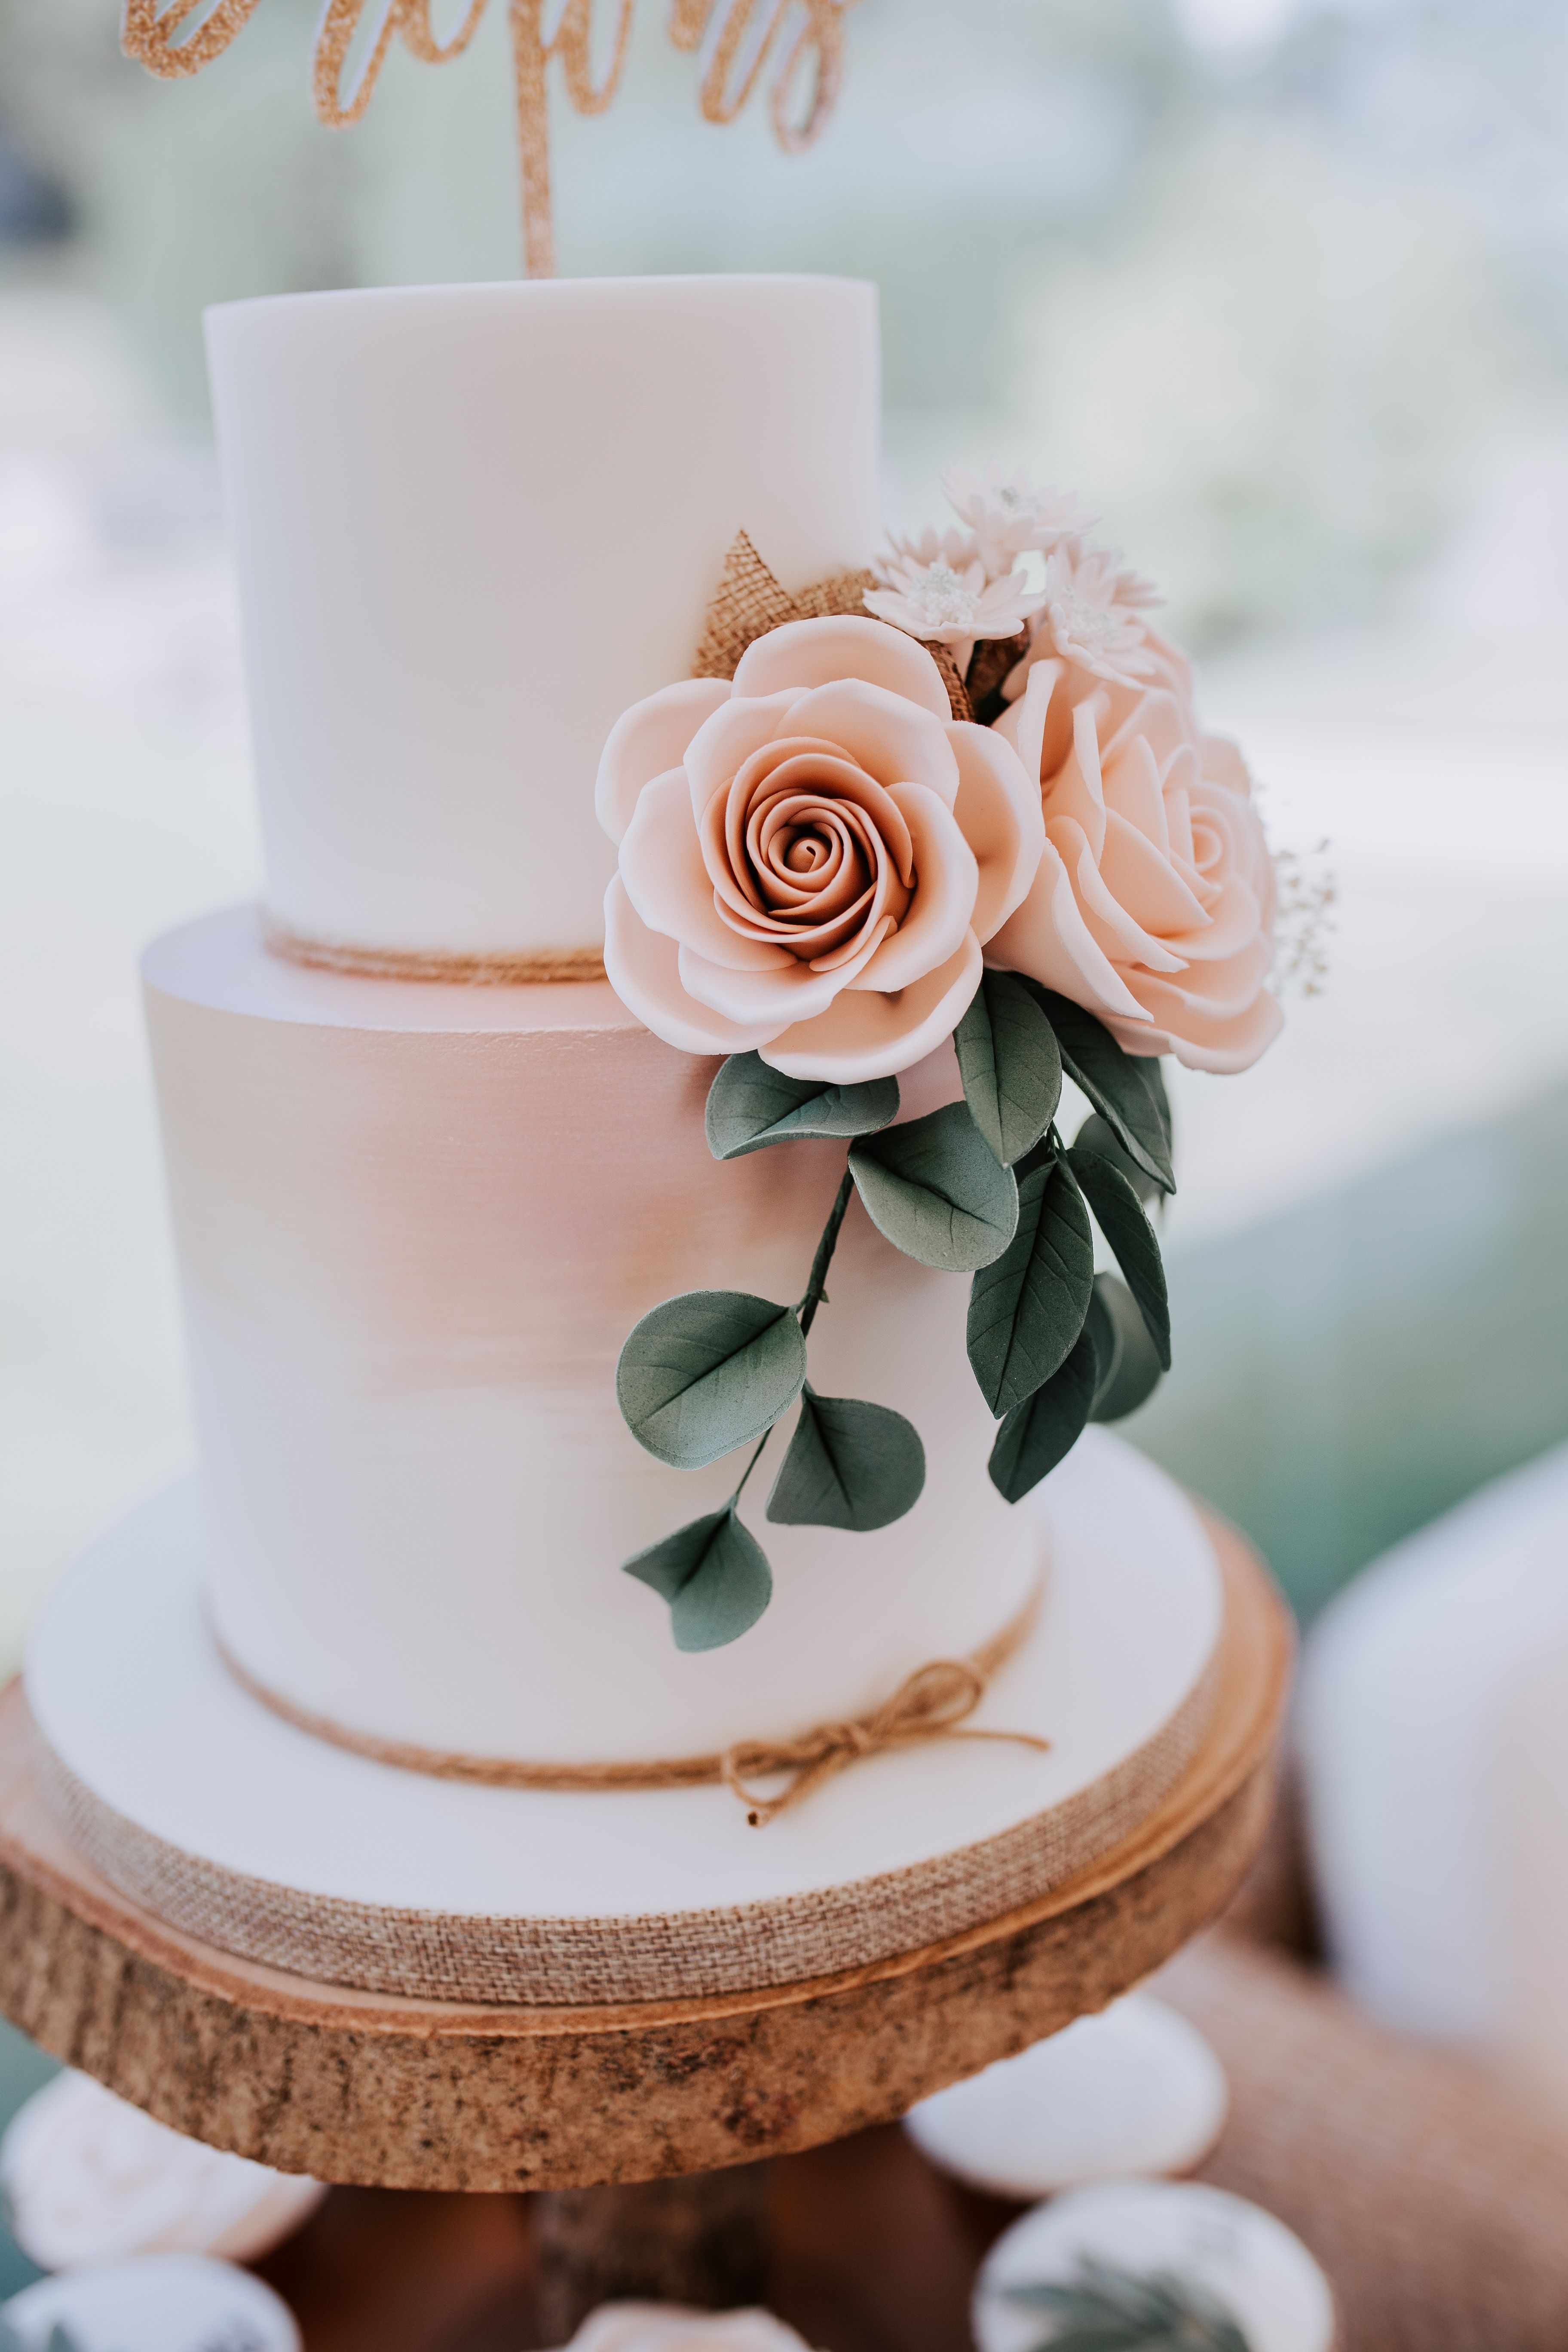 Look at the detail on this cake absolutely amazing a two tier